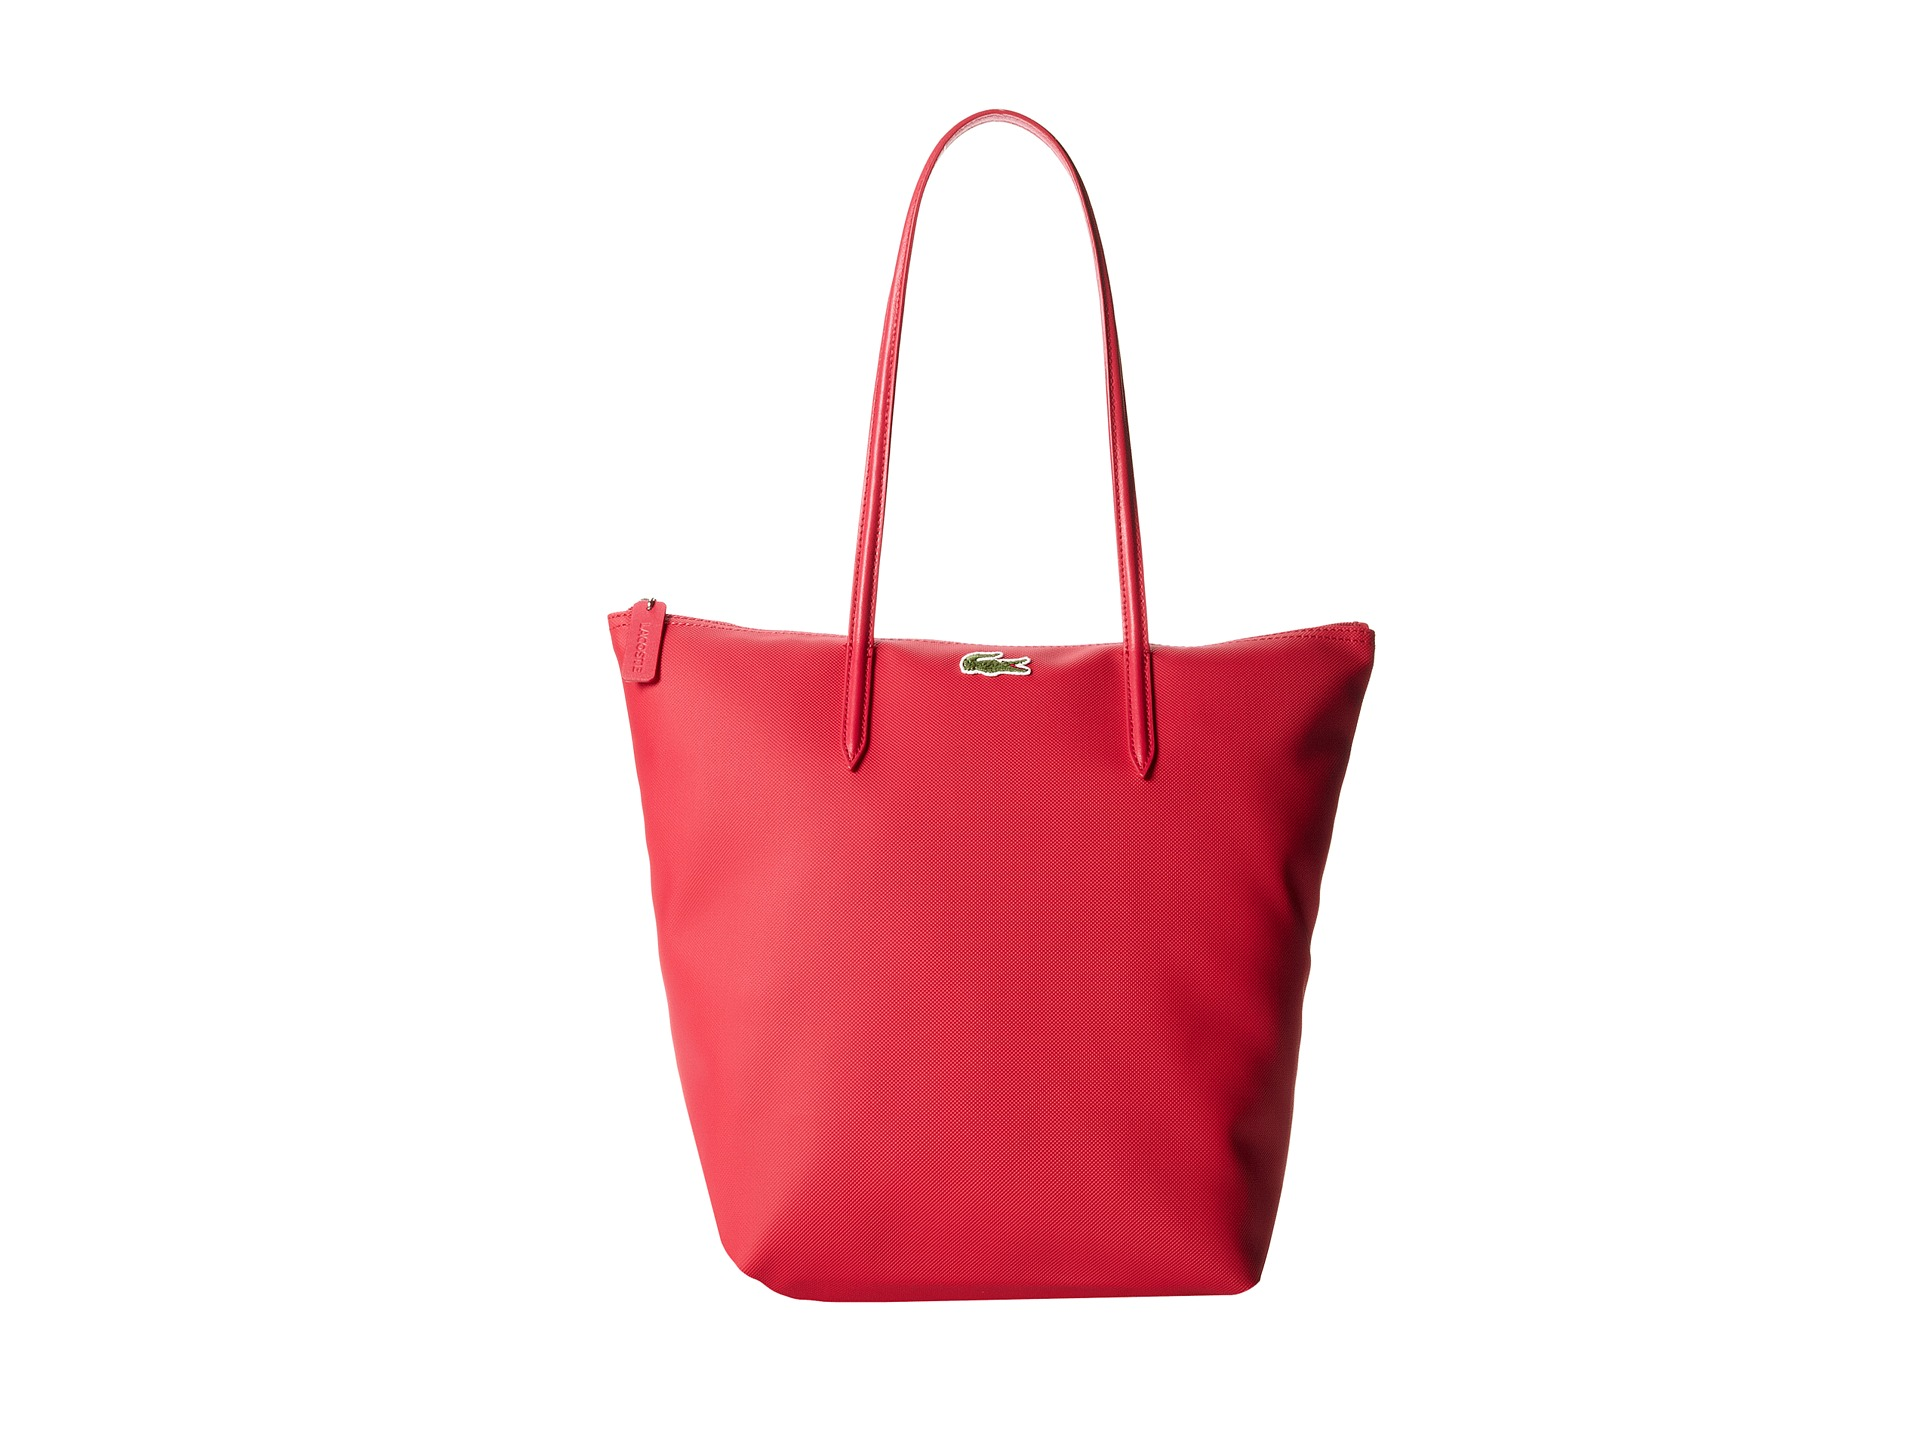 lacoste l 12 12 concept m1 vertical tote bag at zappos